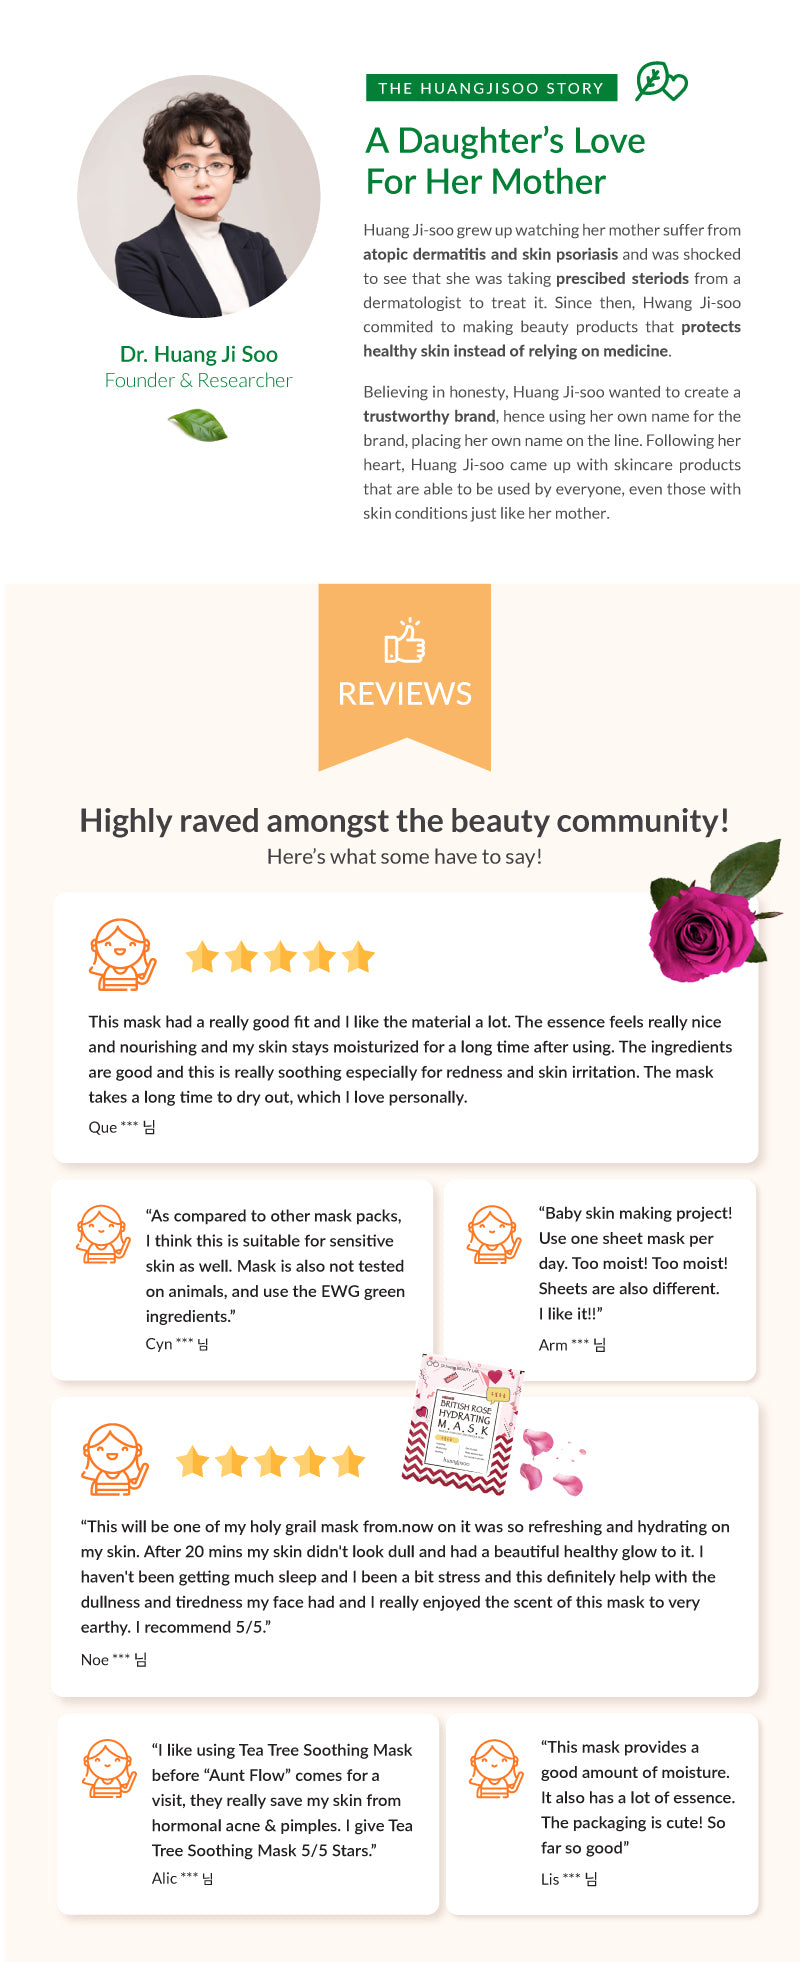 Founded by Dr. Huang Ji Soo with her passion to make the purest and organic skincare made for sensitive skin. Check out our reviews by fans here